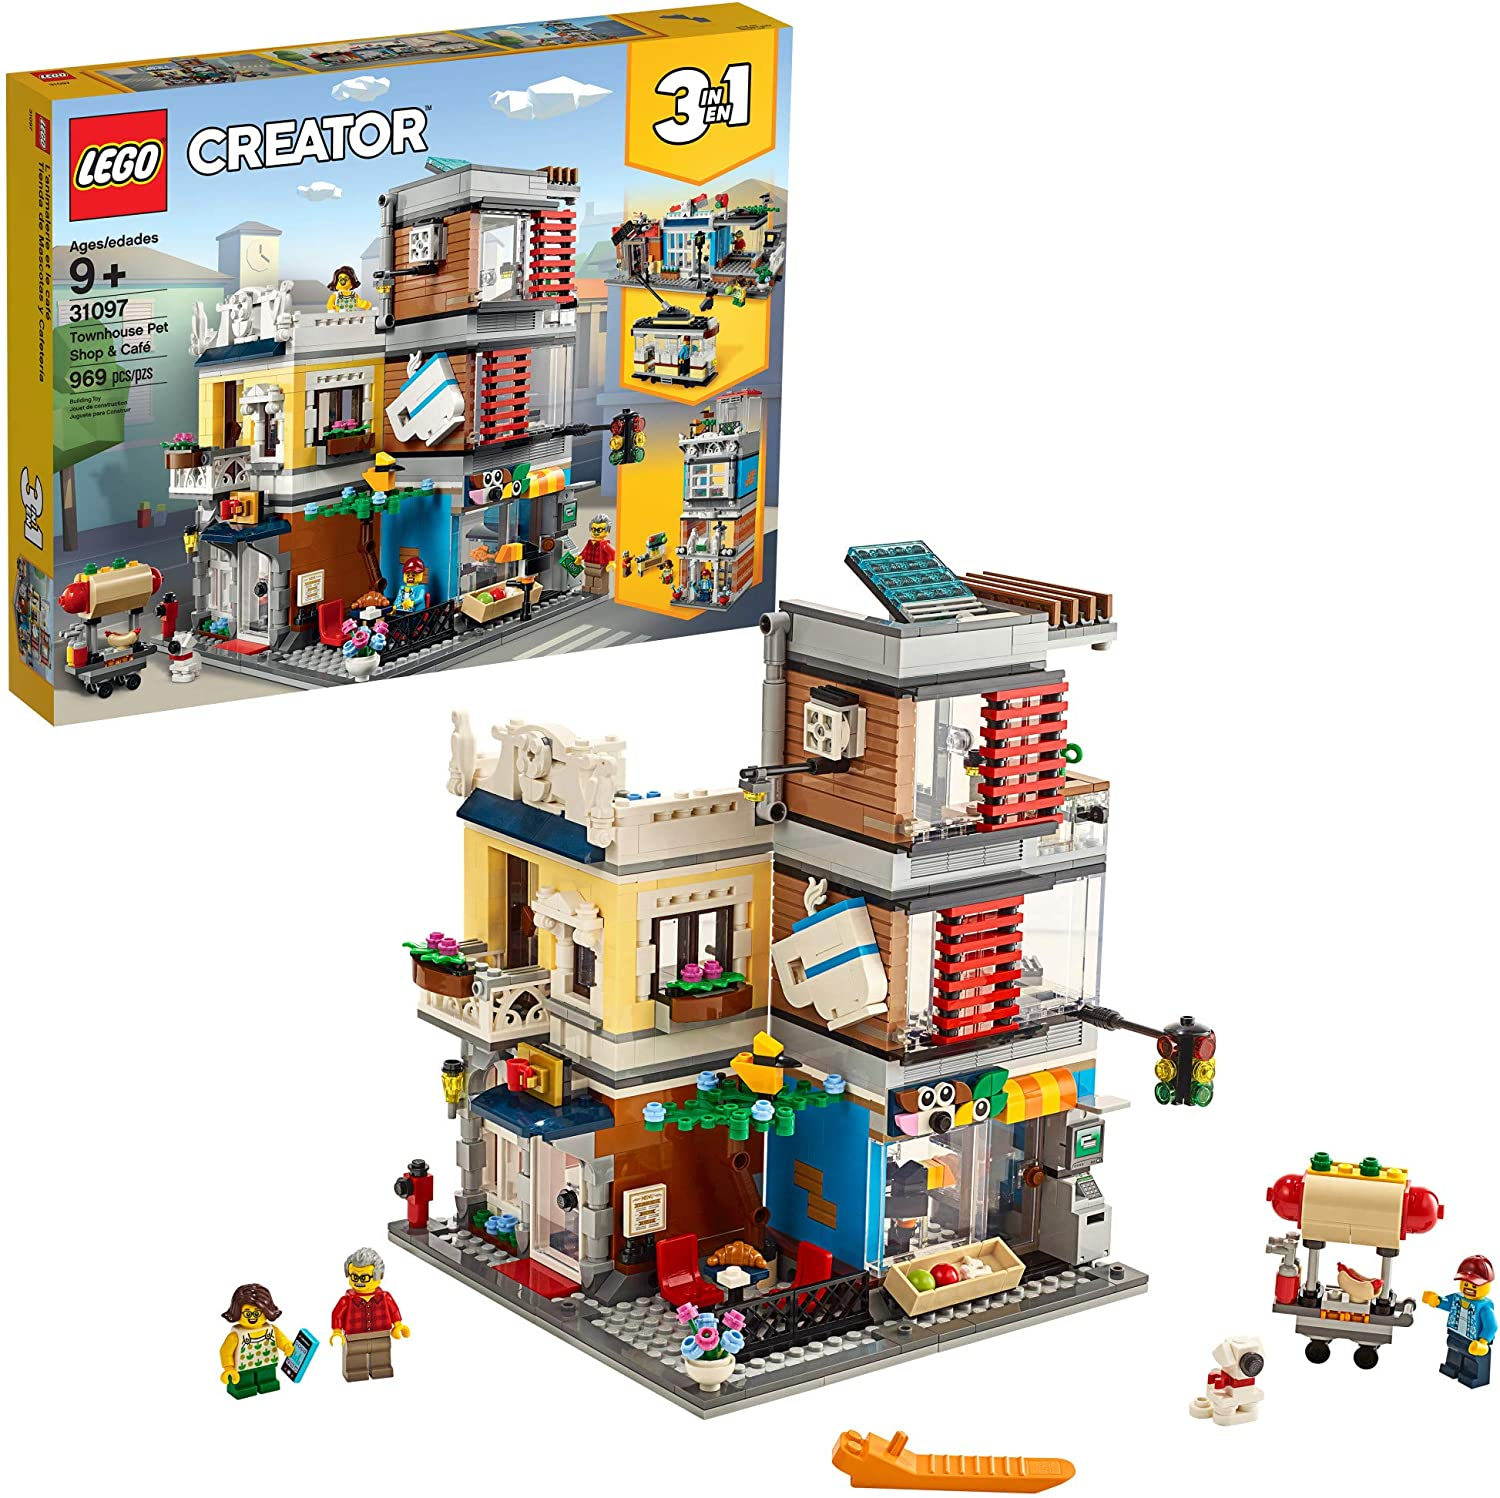 Lego Creator 31097 3-in-1 pet shop and cafe box with pieces